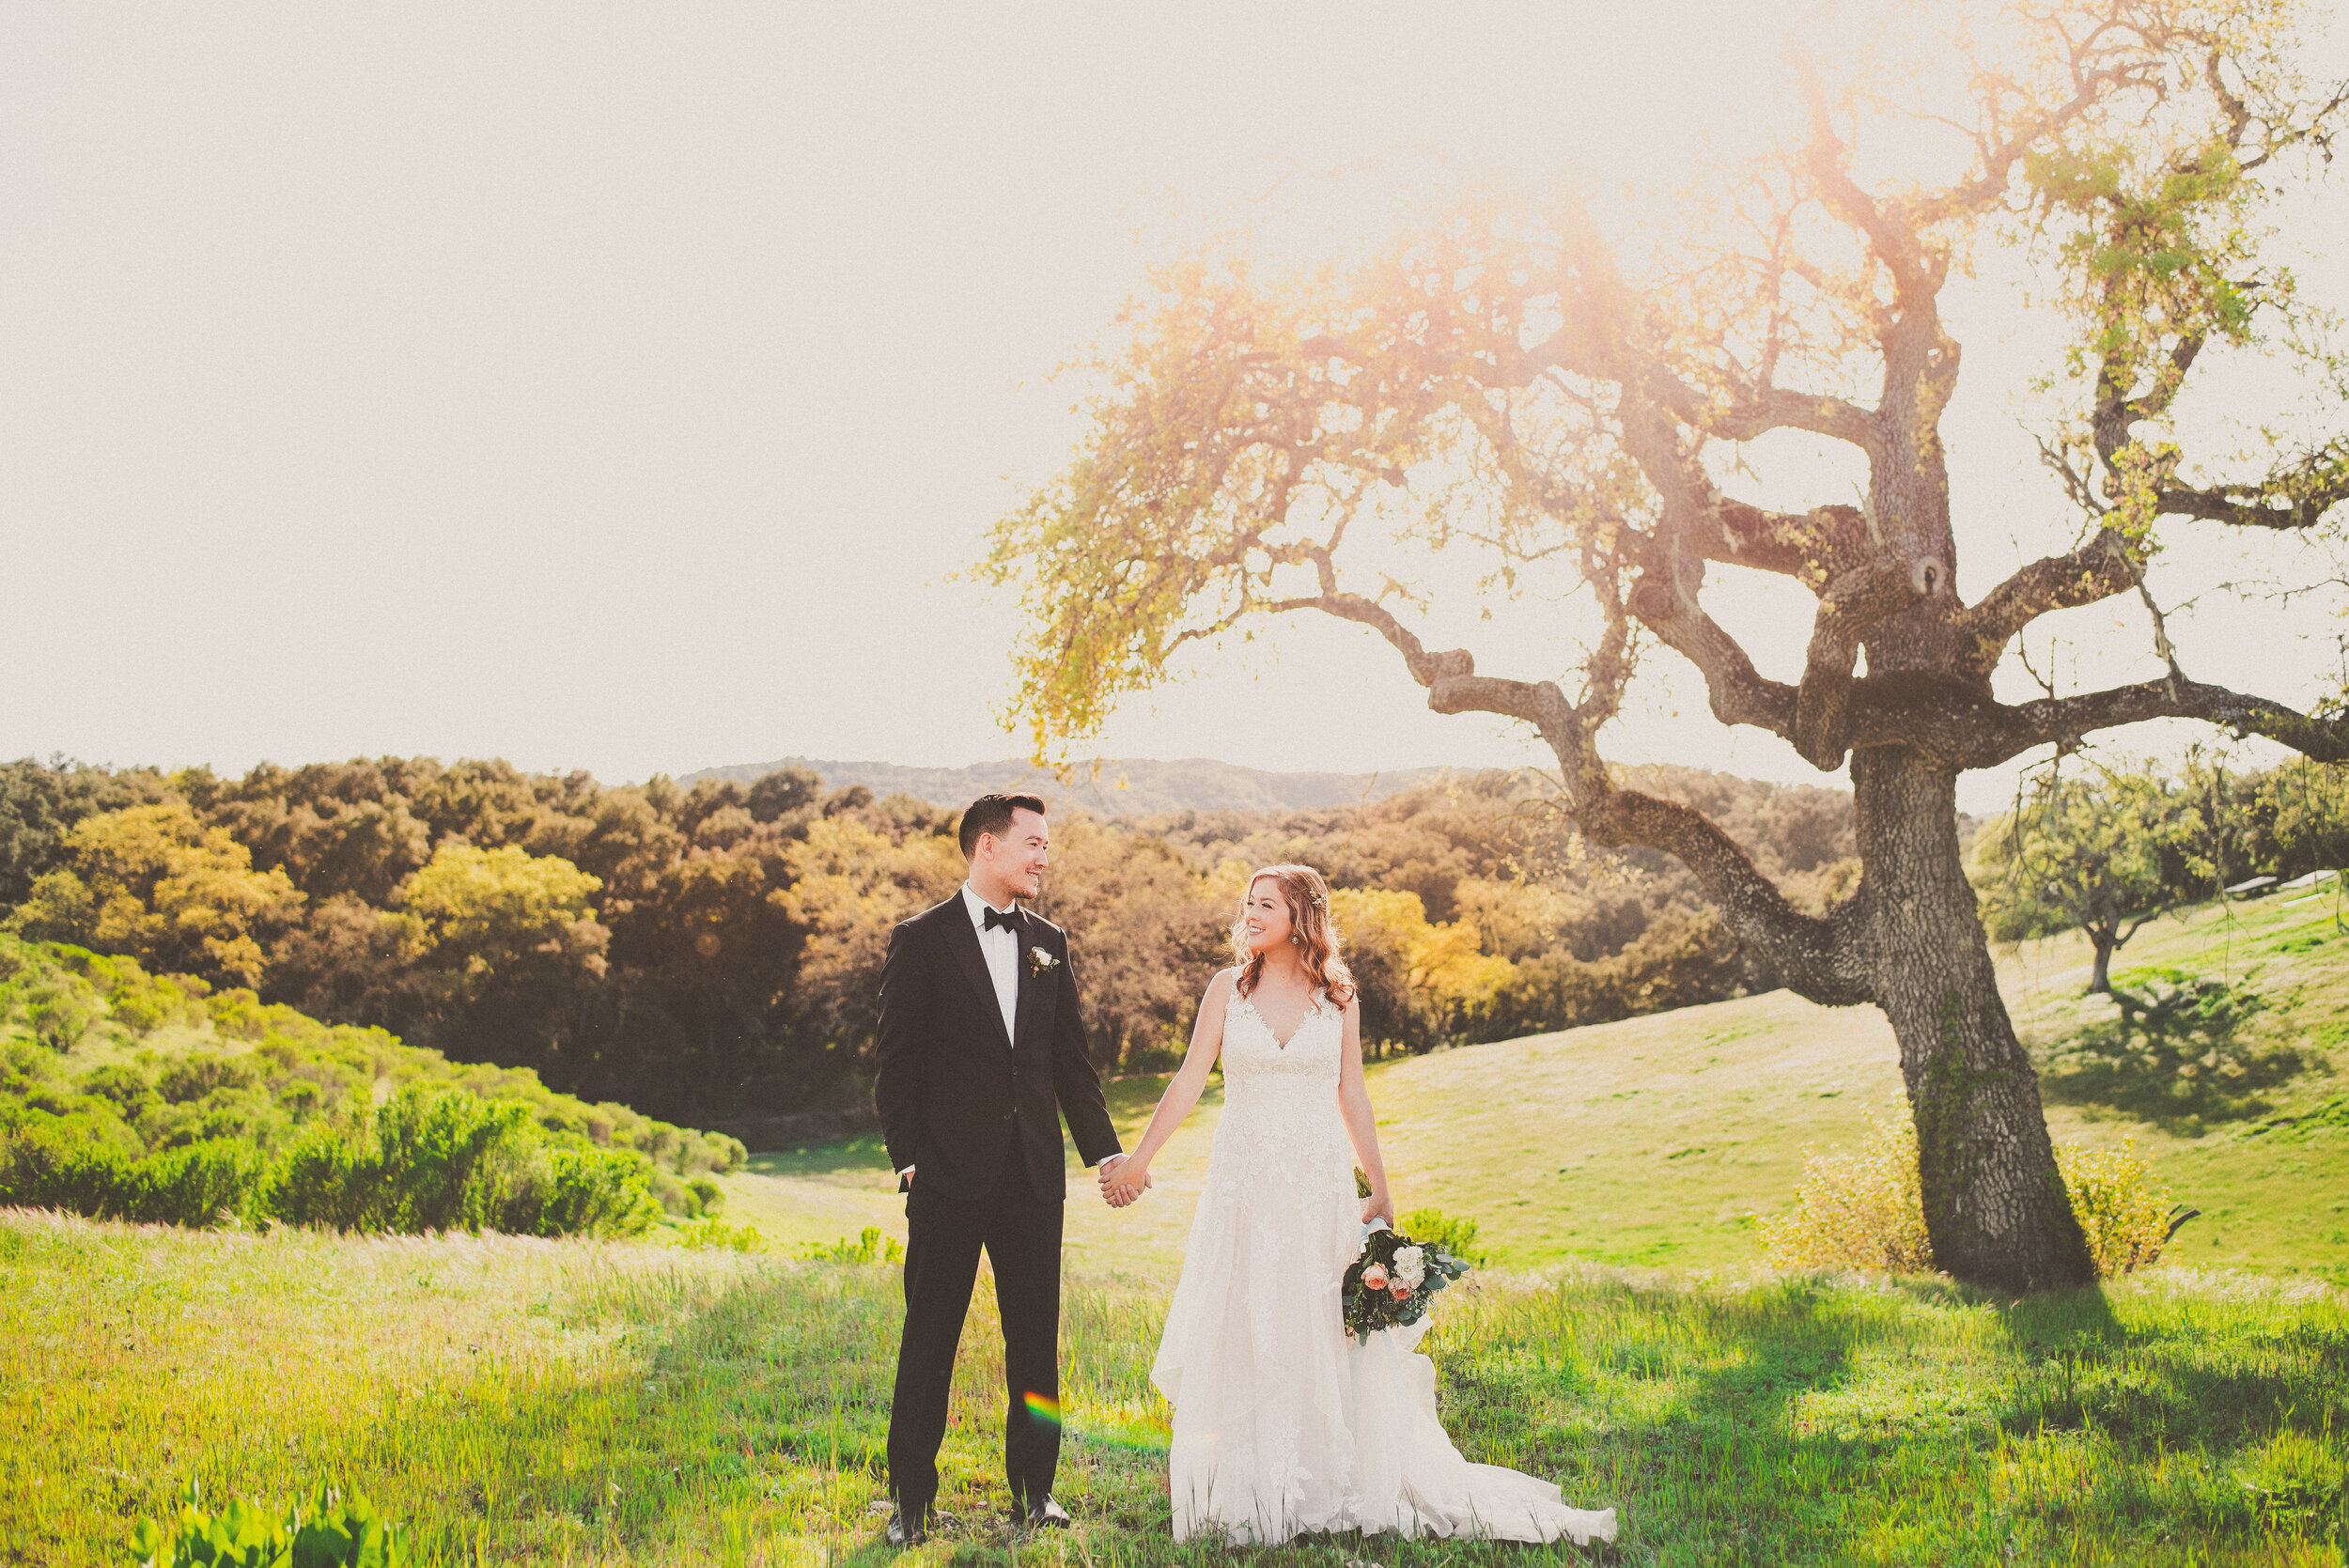 Kyle & Ariana - Bride & Groom-20.jpg